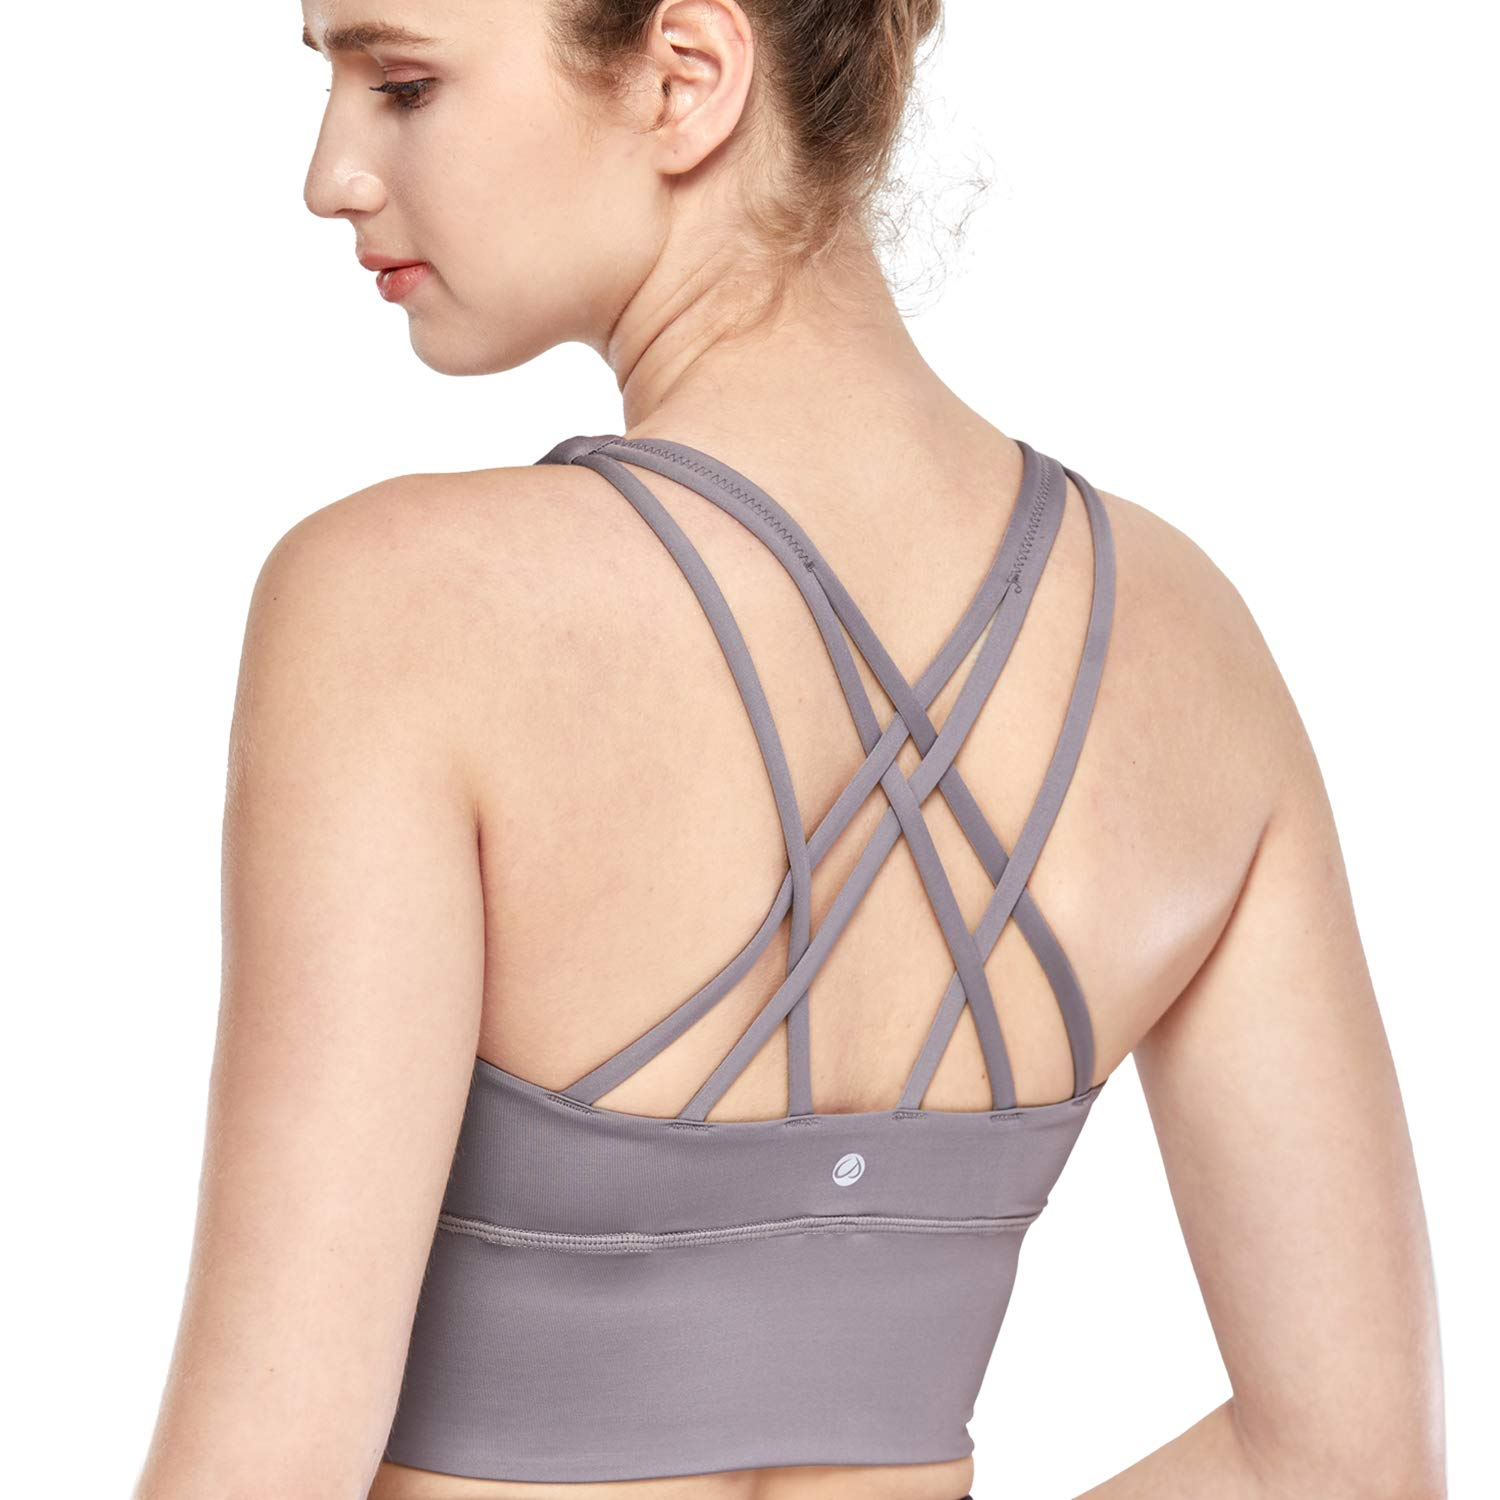 CRZ YOGA Strappy Sports Bras for Women Longline Wirefree Padded Medium Support Yoga Bra Top Lunar Rock L by CRZ YOGA